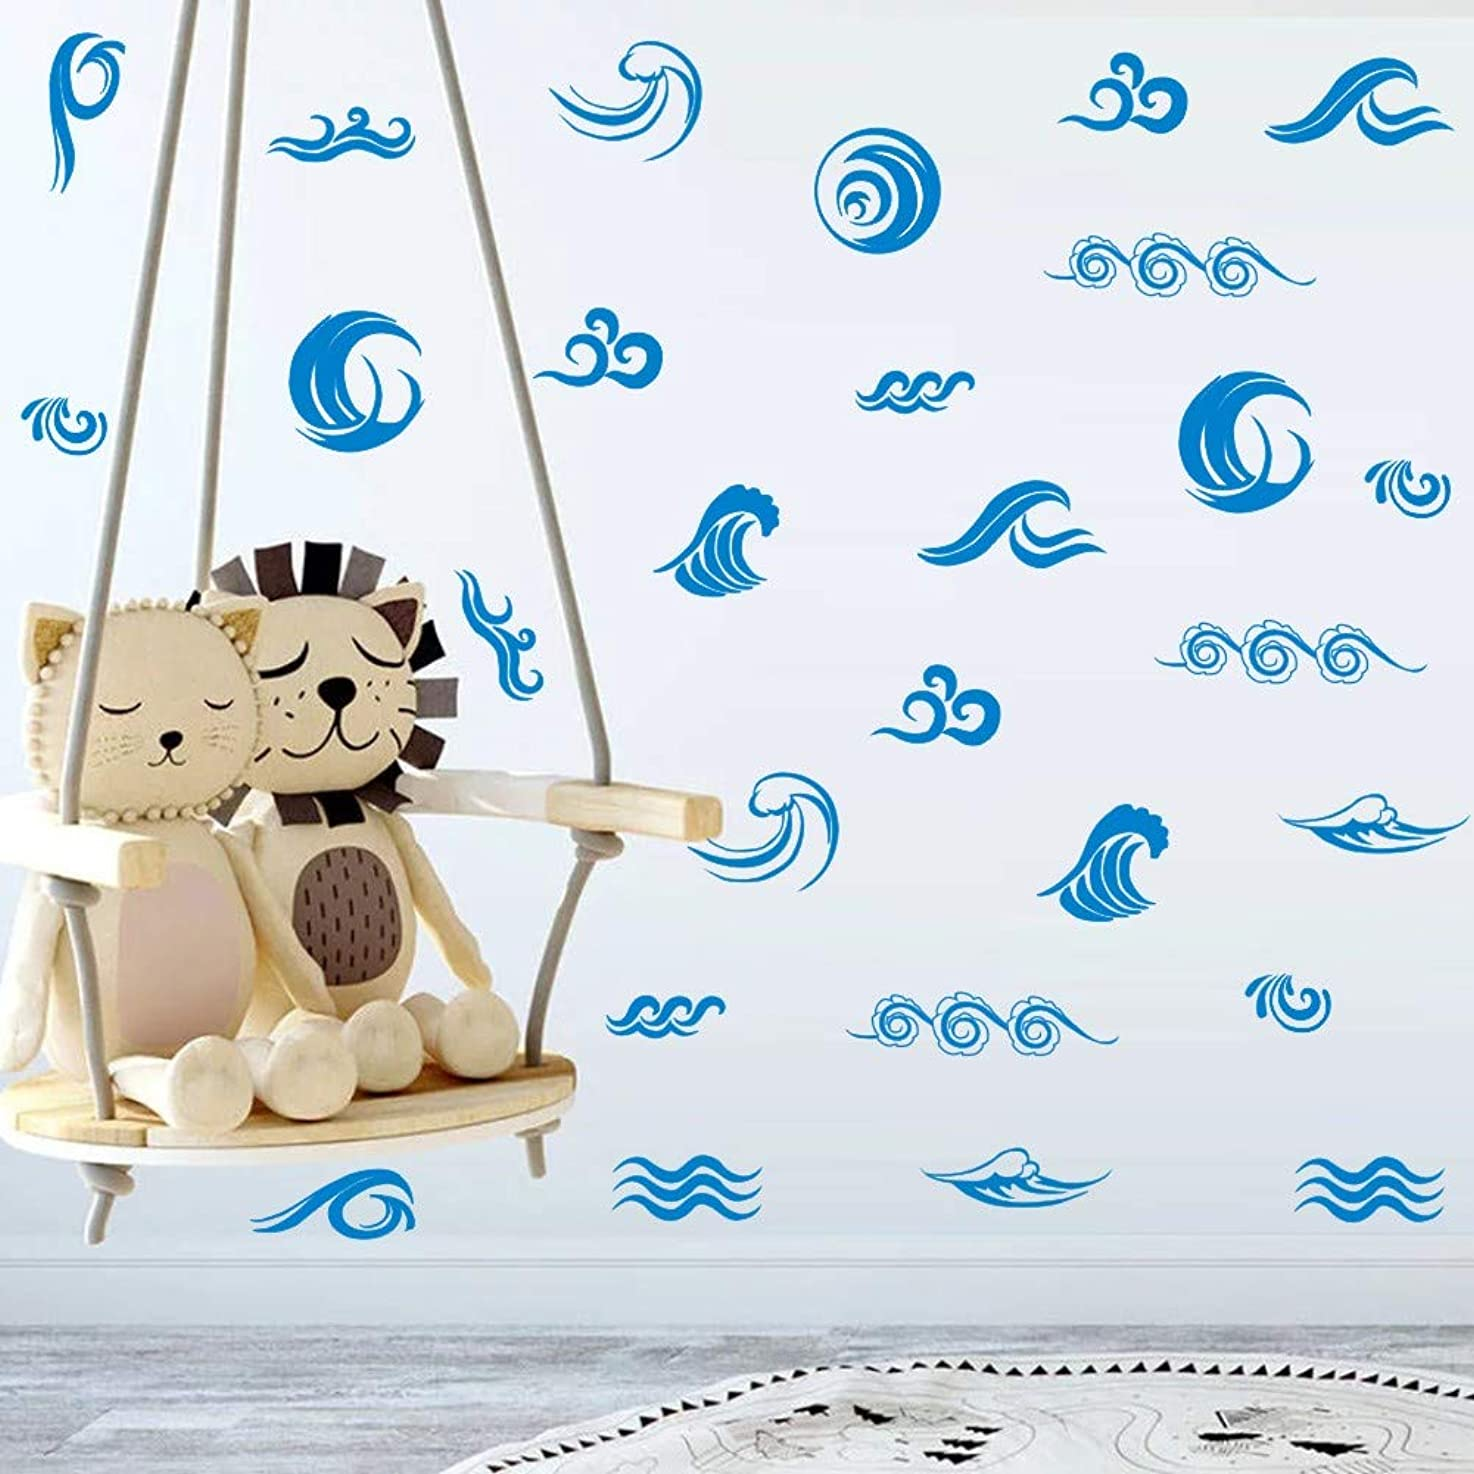 Ocean Wave Wall Decal, Blue Leaping Waves Sticker for Nursery Sea World Theme Decoration,Cute Window Cling Decor (34pcs)